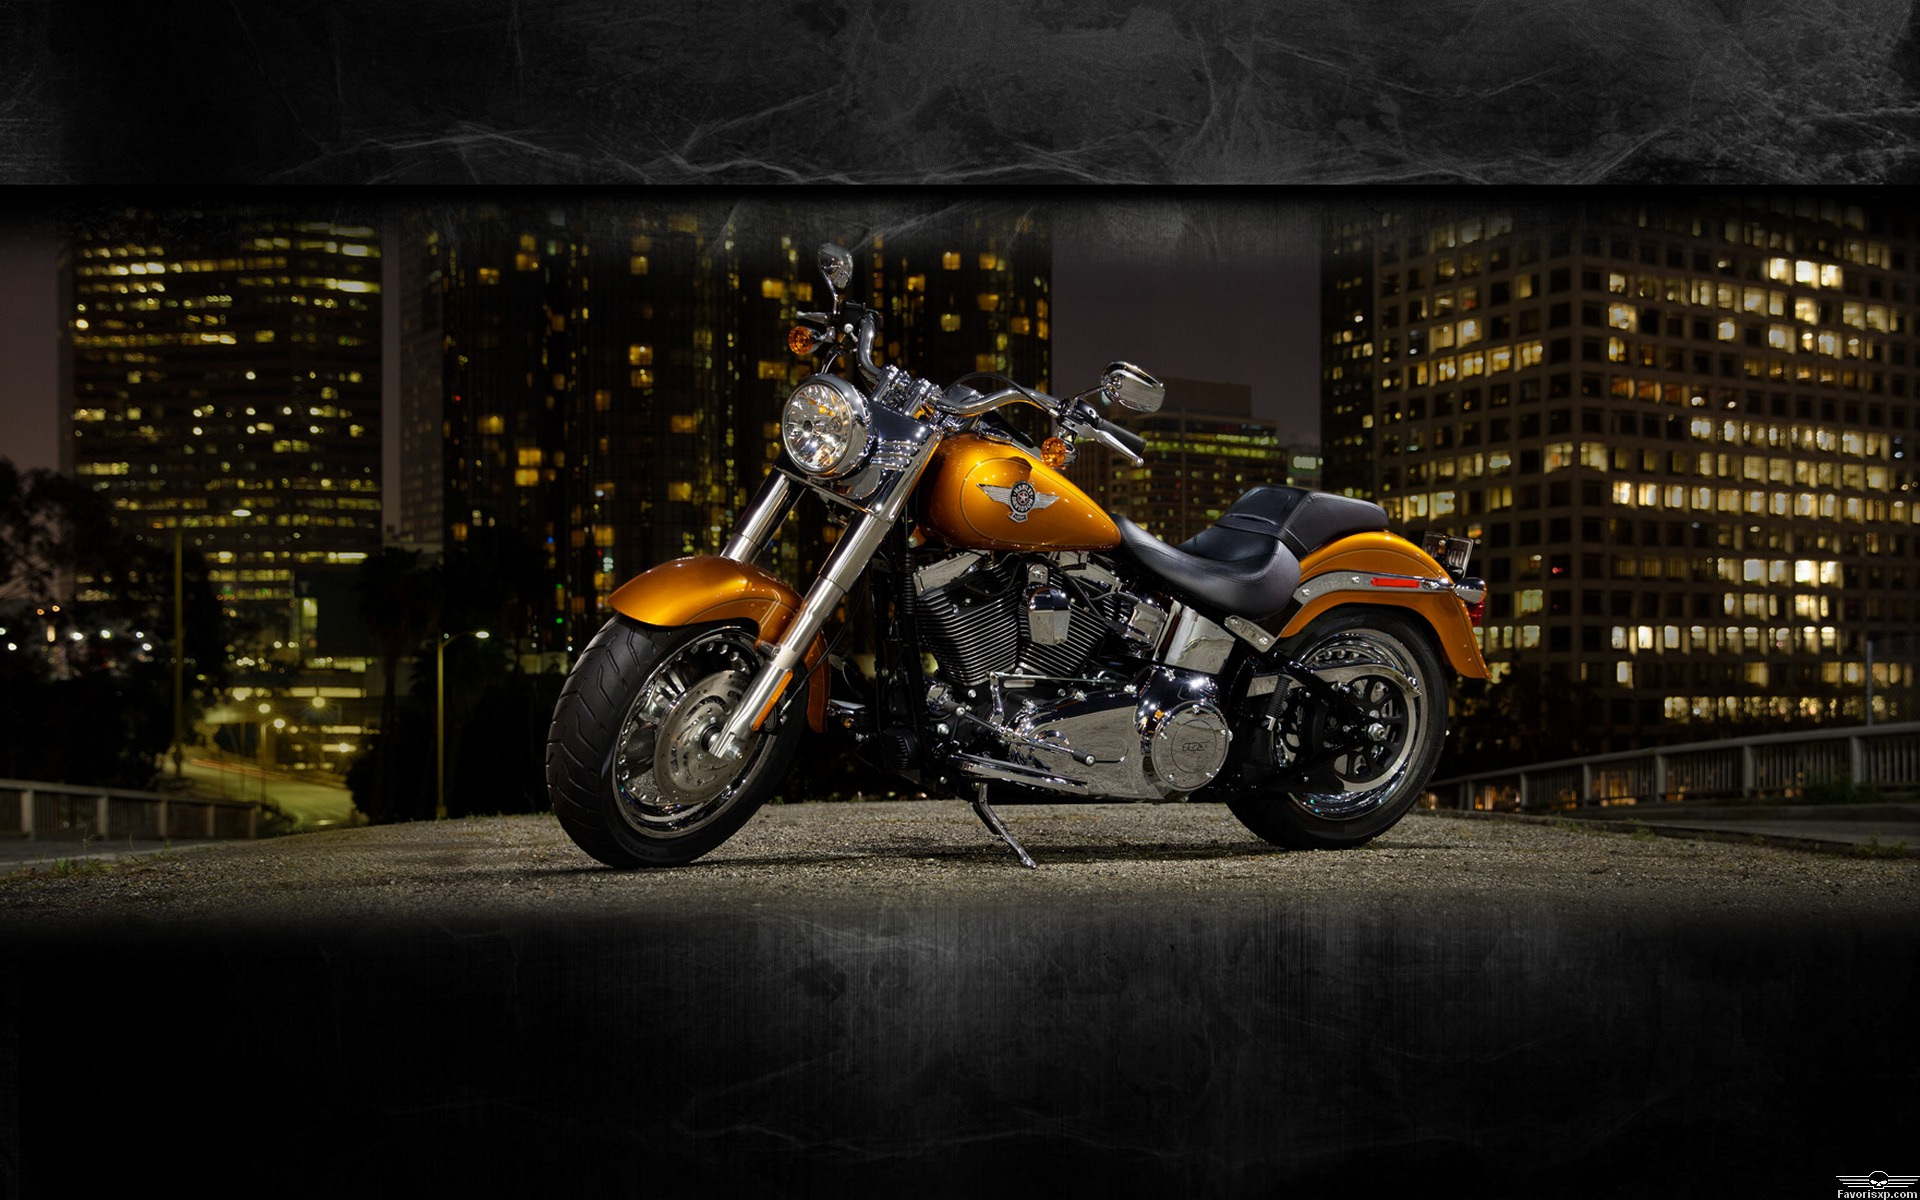 Fond-décran-Harley-Davidson-Softail-Fat-Boy-harley-davidson-motorycles-wallpaper-wp5007629